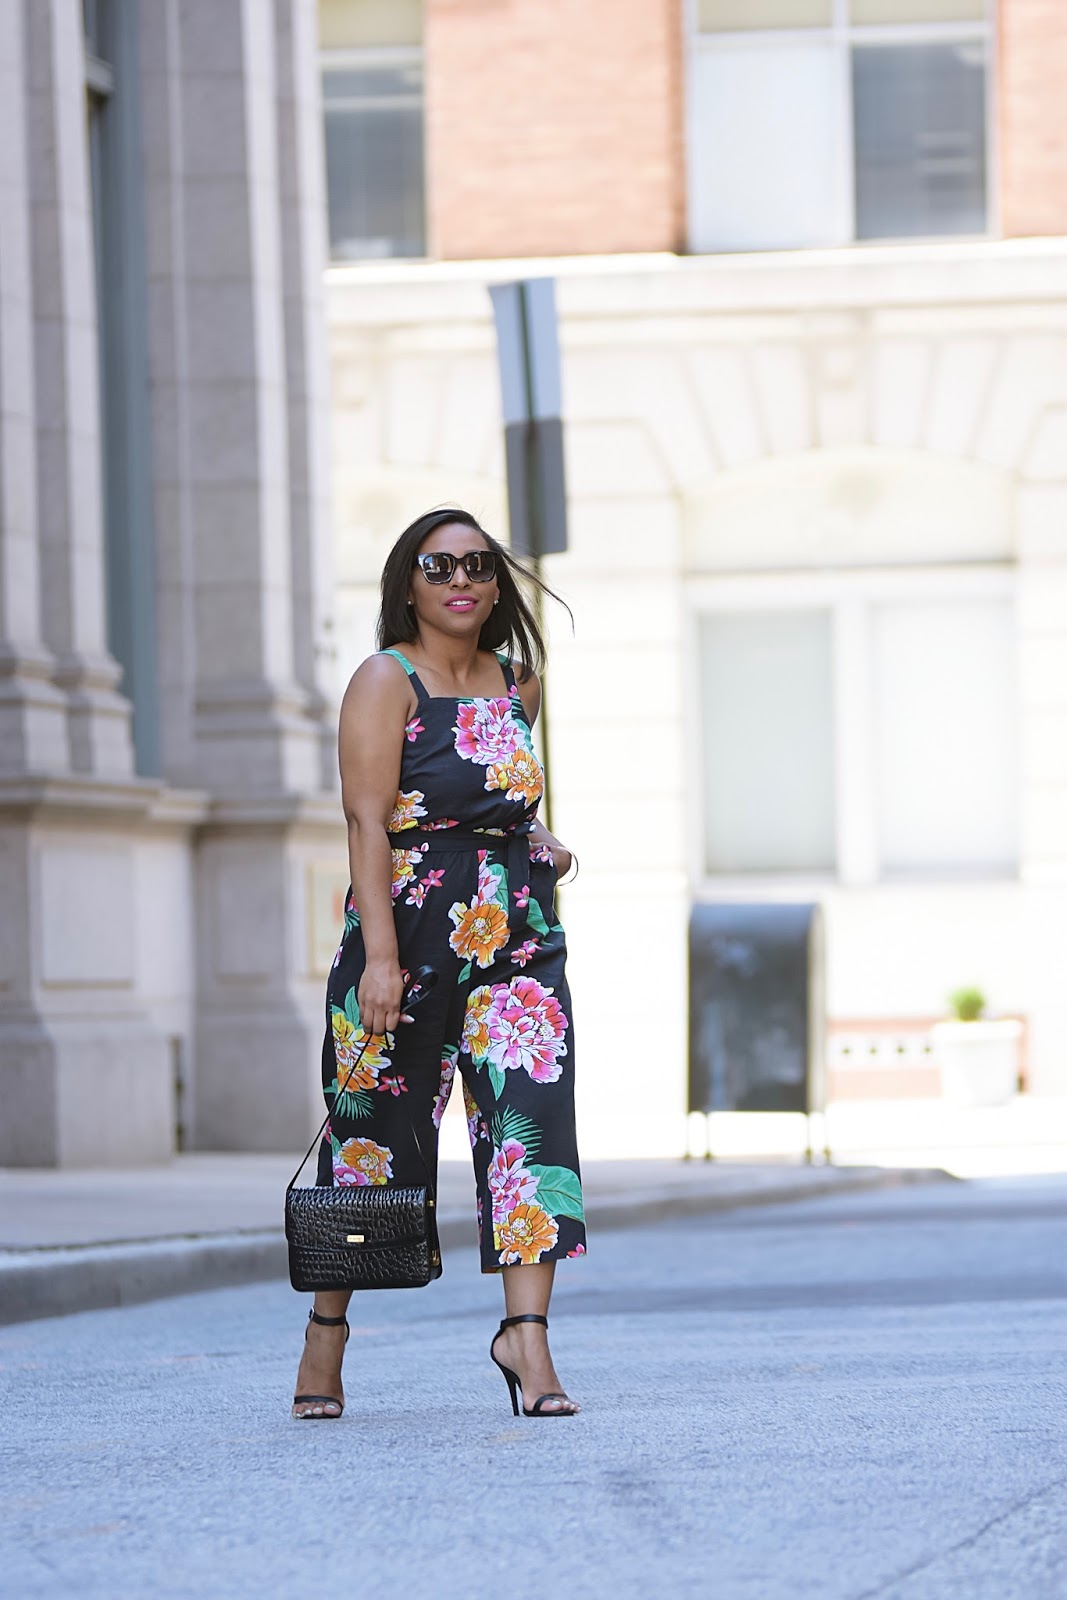 Summer Vibes Black Floral Jumpsuit, old navy, tropical prints, summer outfit ideas, baltimore, old navy style, ankle strap heels, linen jumpsuit, summer styles, romper, details, dc bloggers, walking in street, floral print, summer looks